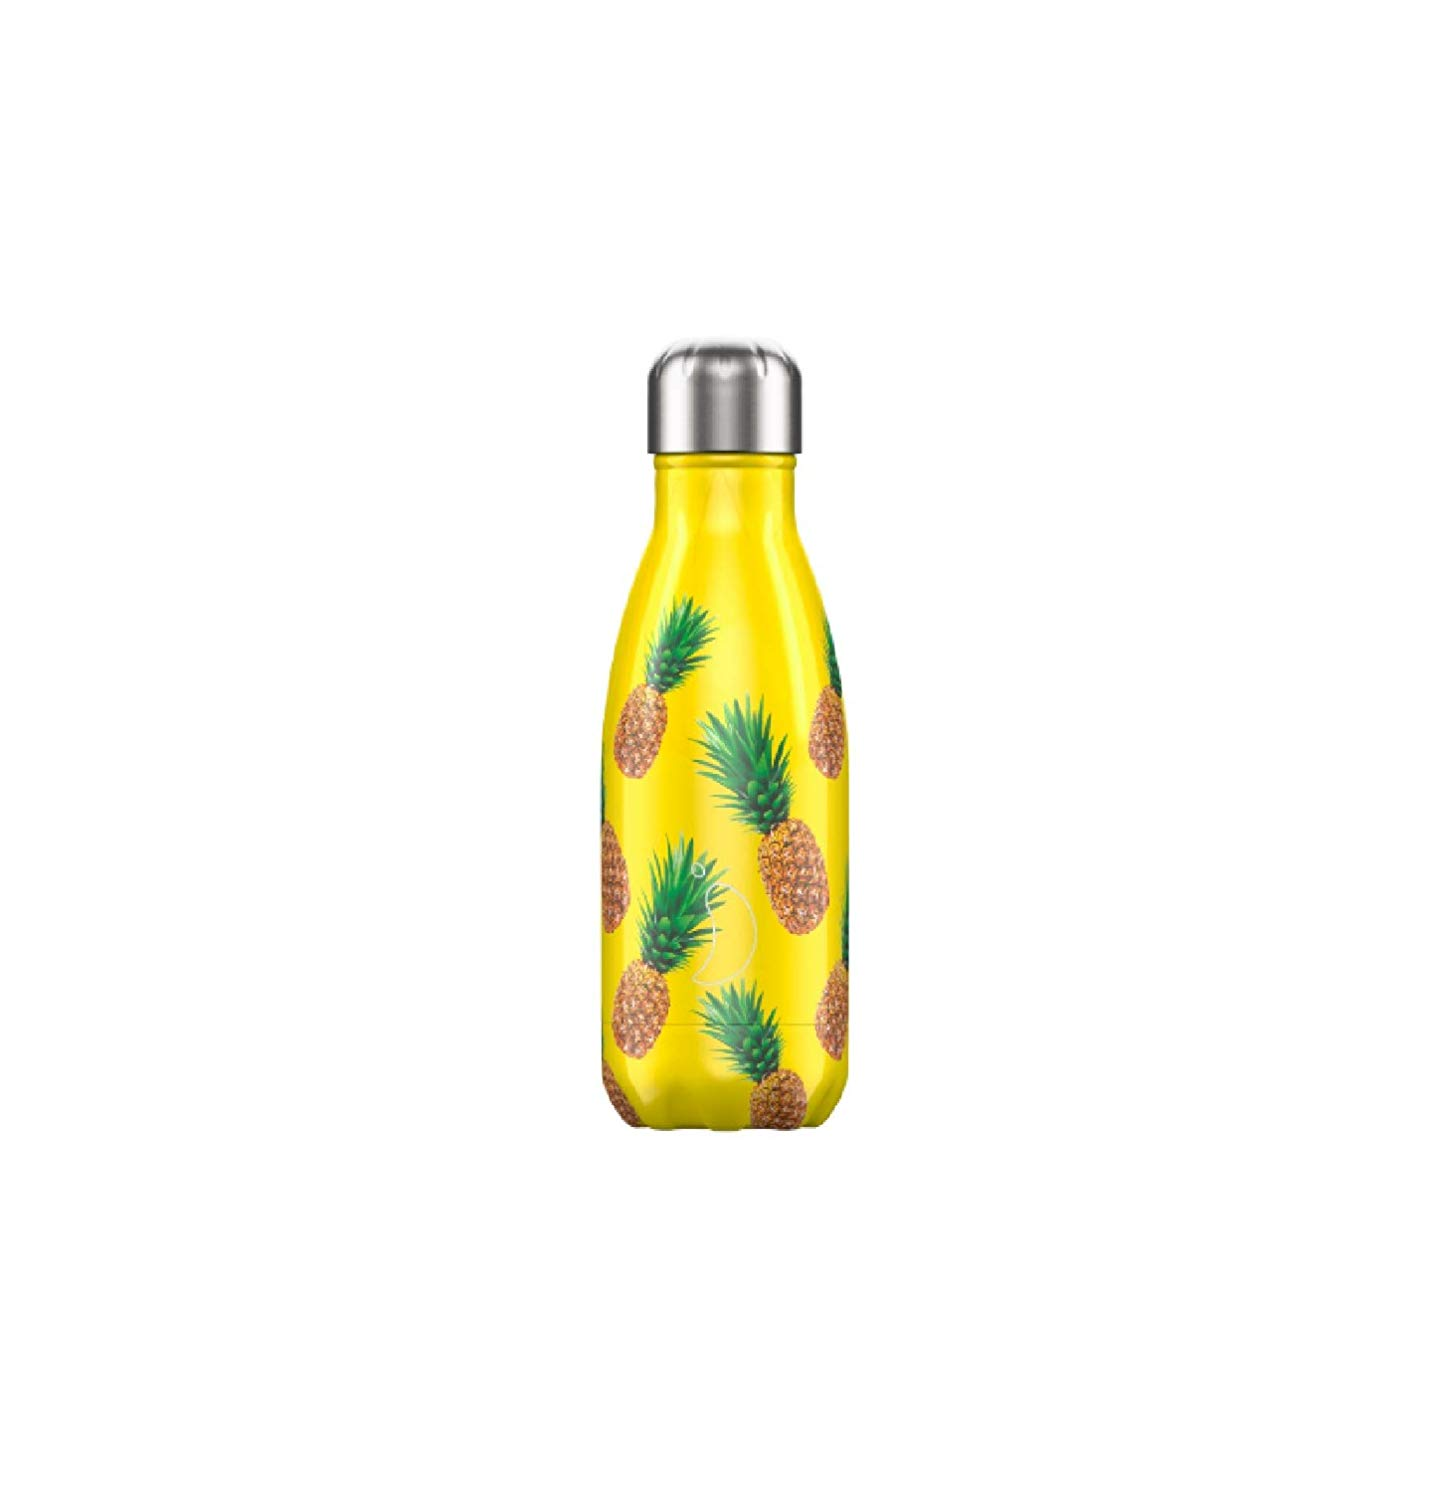 Chillys BOTELLA INOX PIÑAS 260 ml Botellas termicas